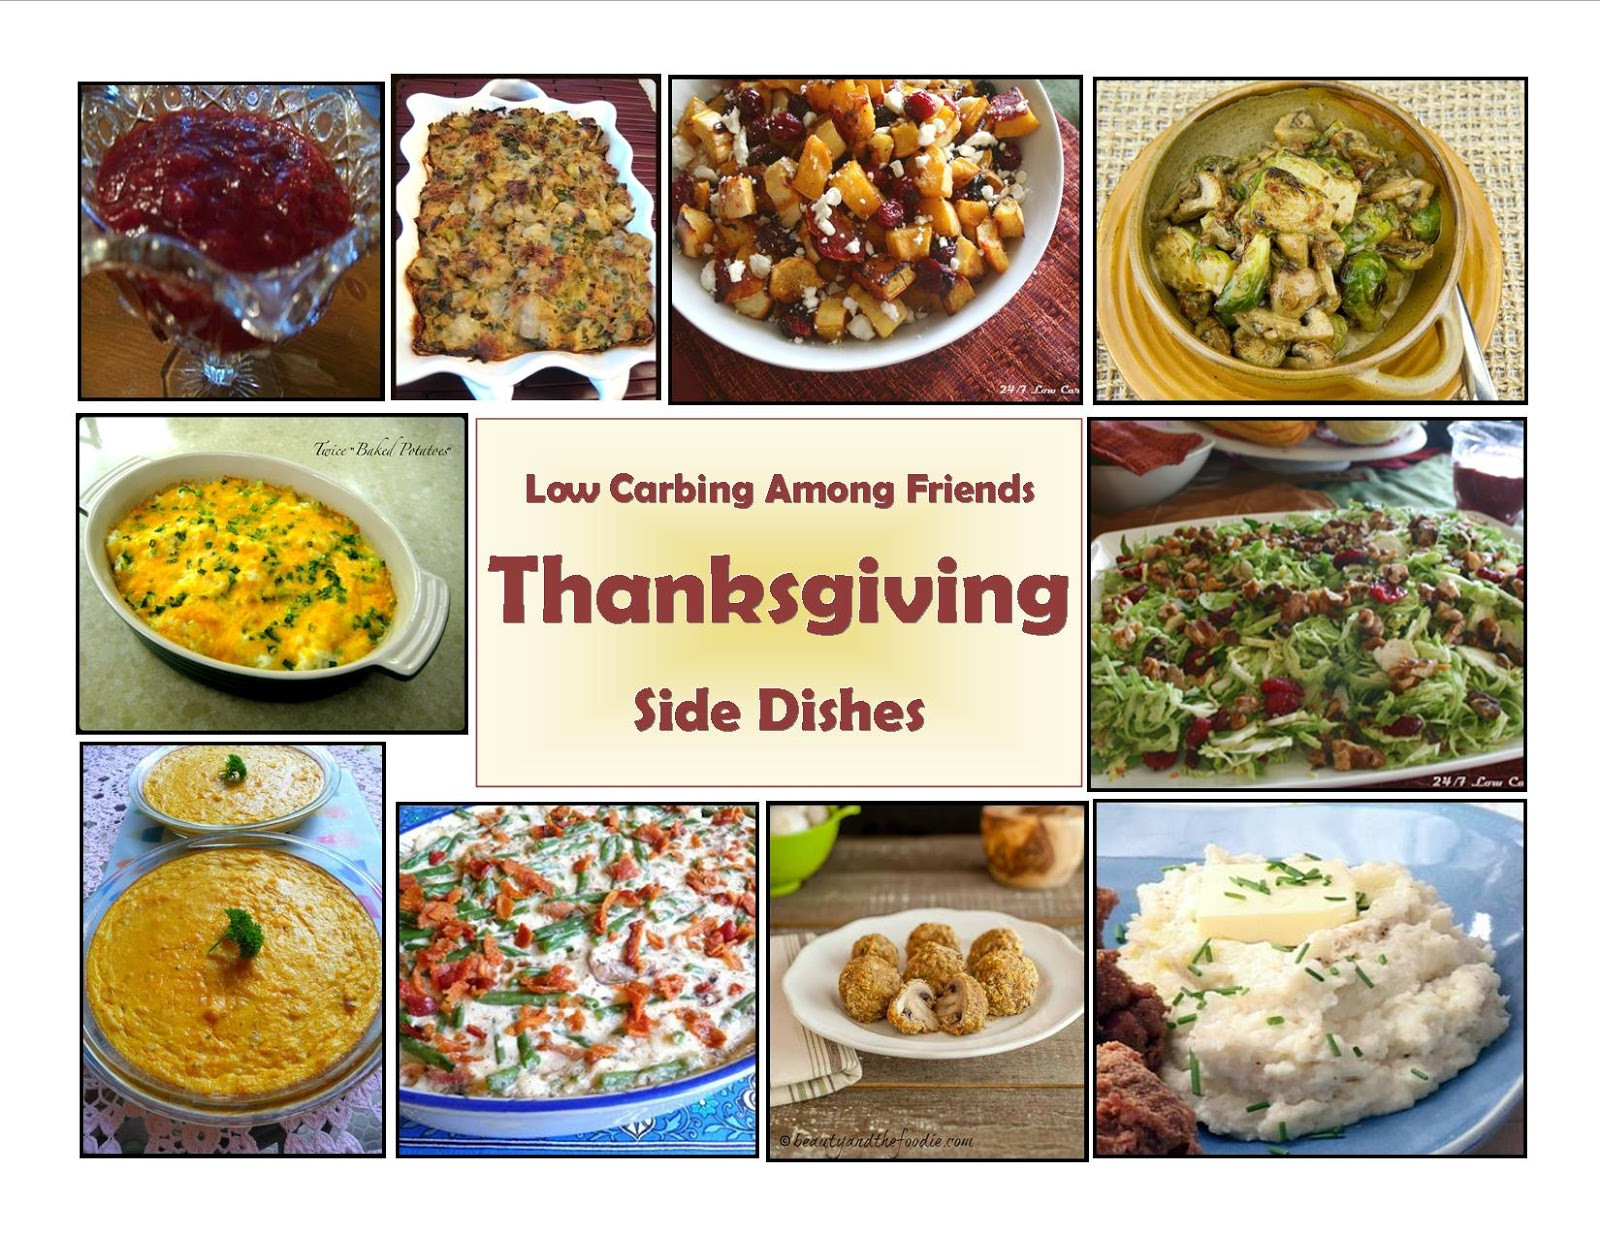 Low Carb Thanksgiving Side Dishes  24 7 Low Carb Diner Thanksgiving Sides Round Up